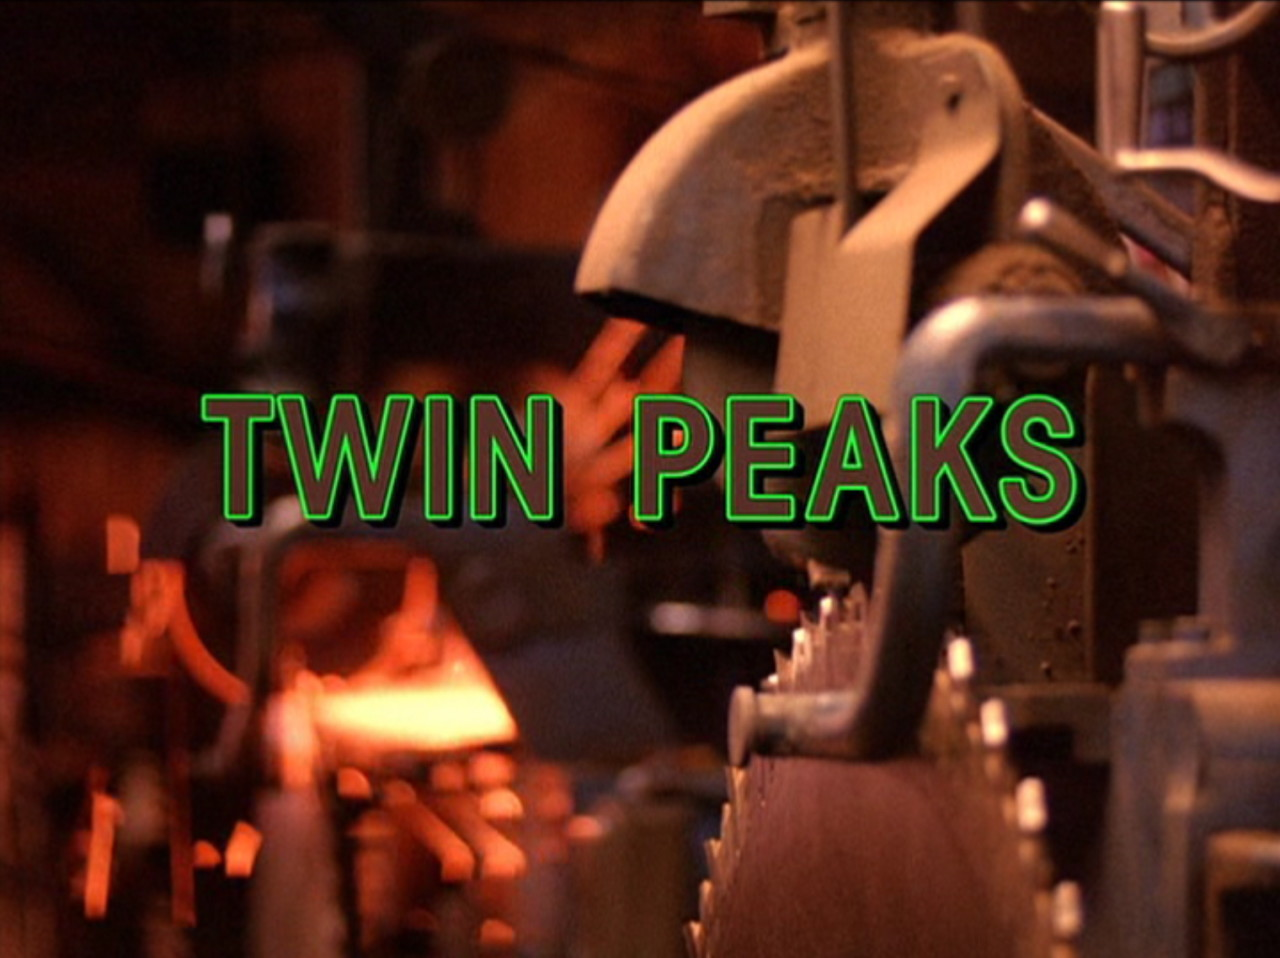 Dreams of Schlock: The Music of Twin Peaks